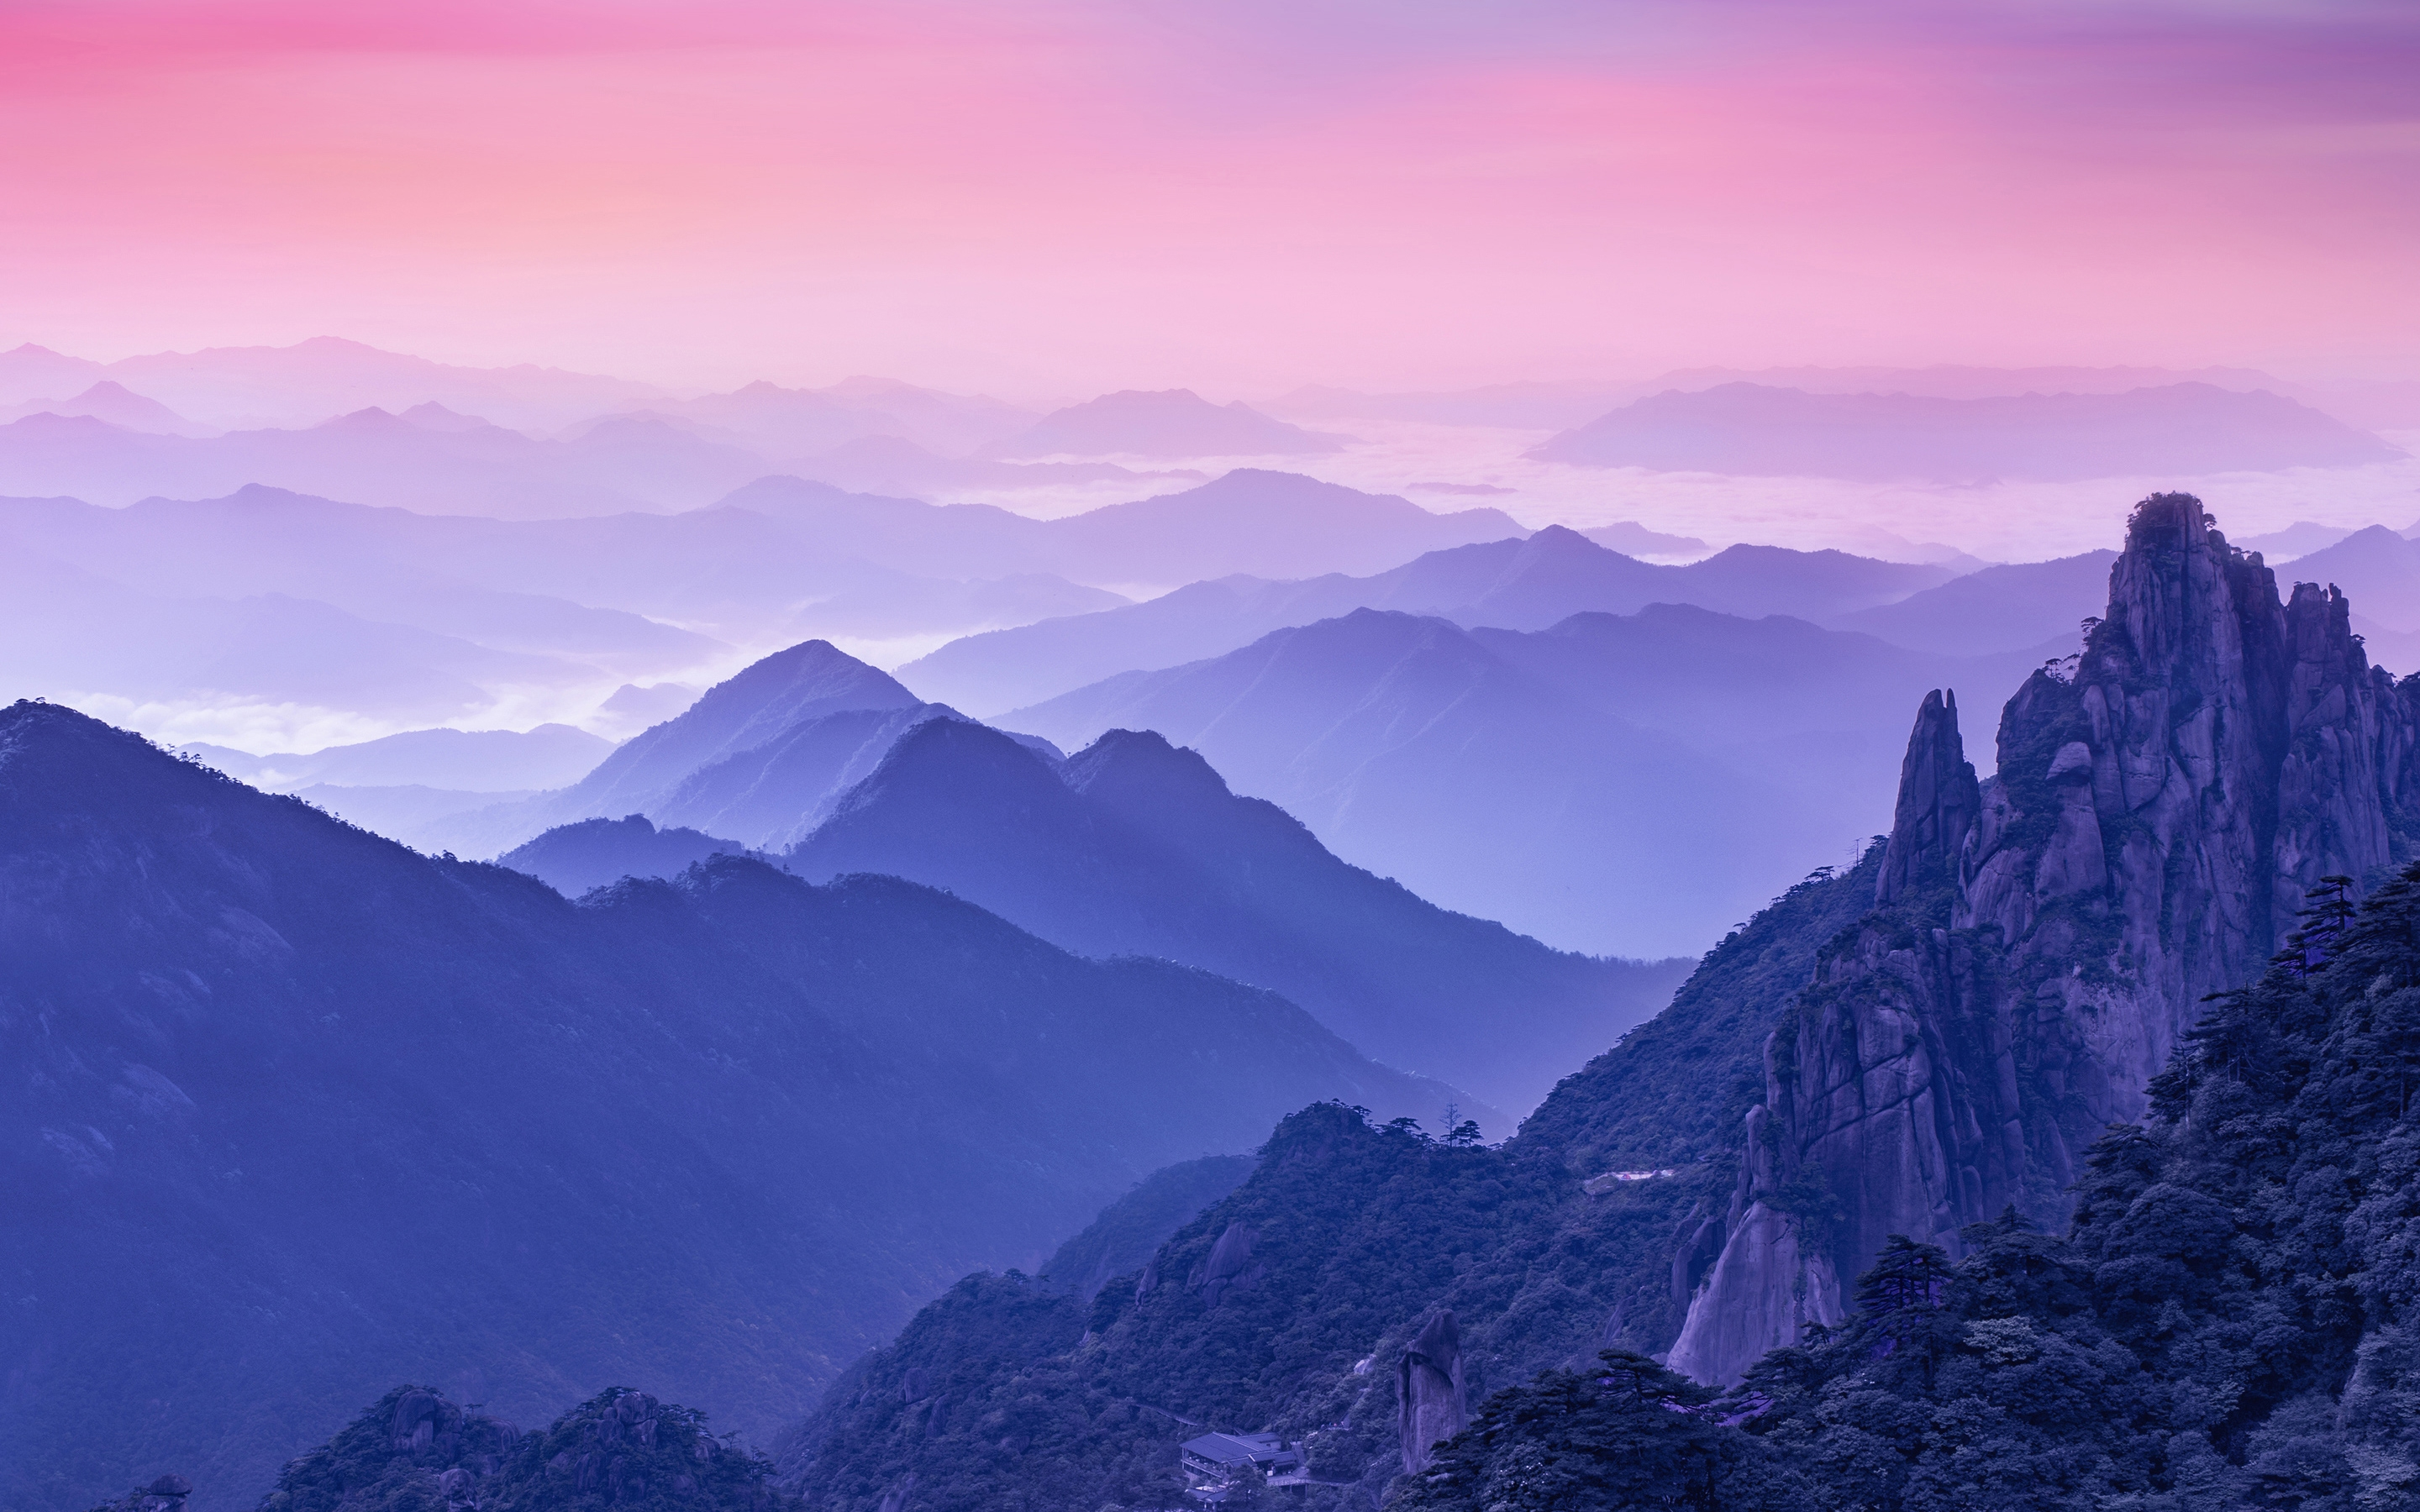 Wallpaper Smartphone Anime Download 2256x1504 Mountains Foggy Cliff Sky Wallpapers